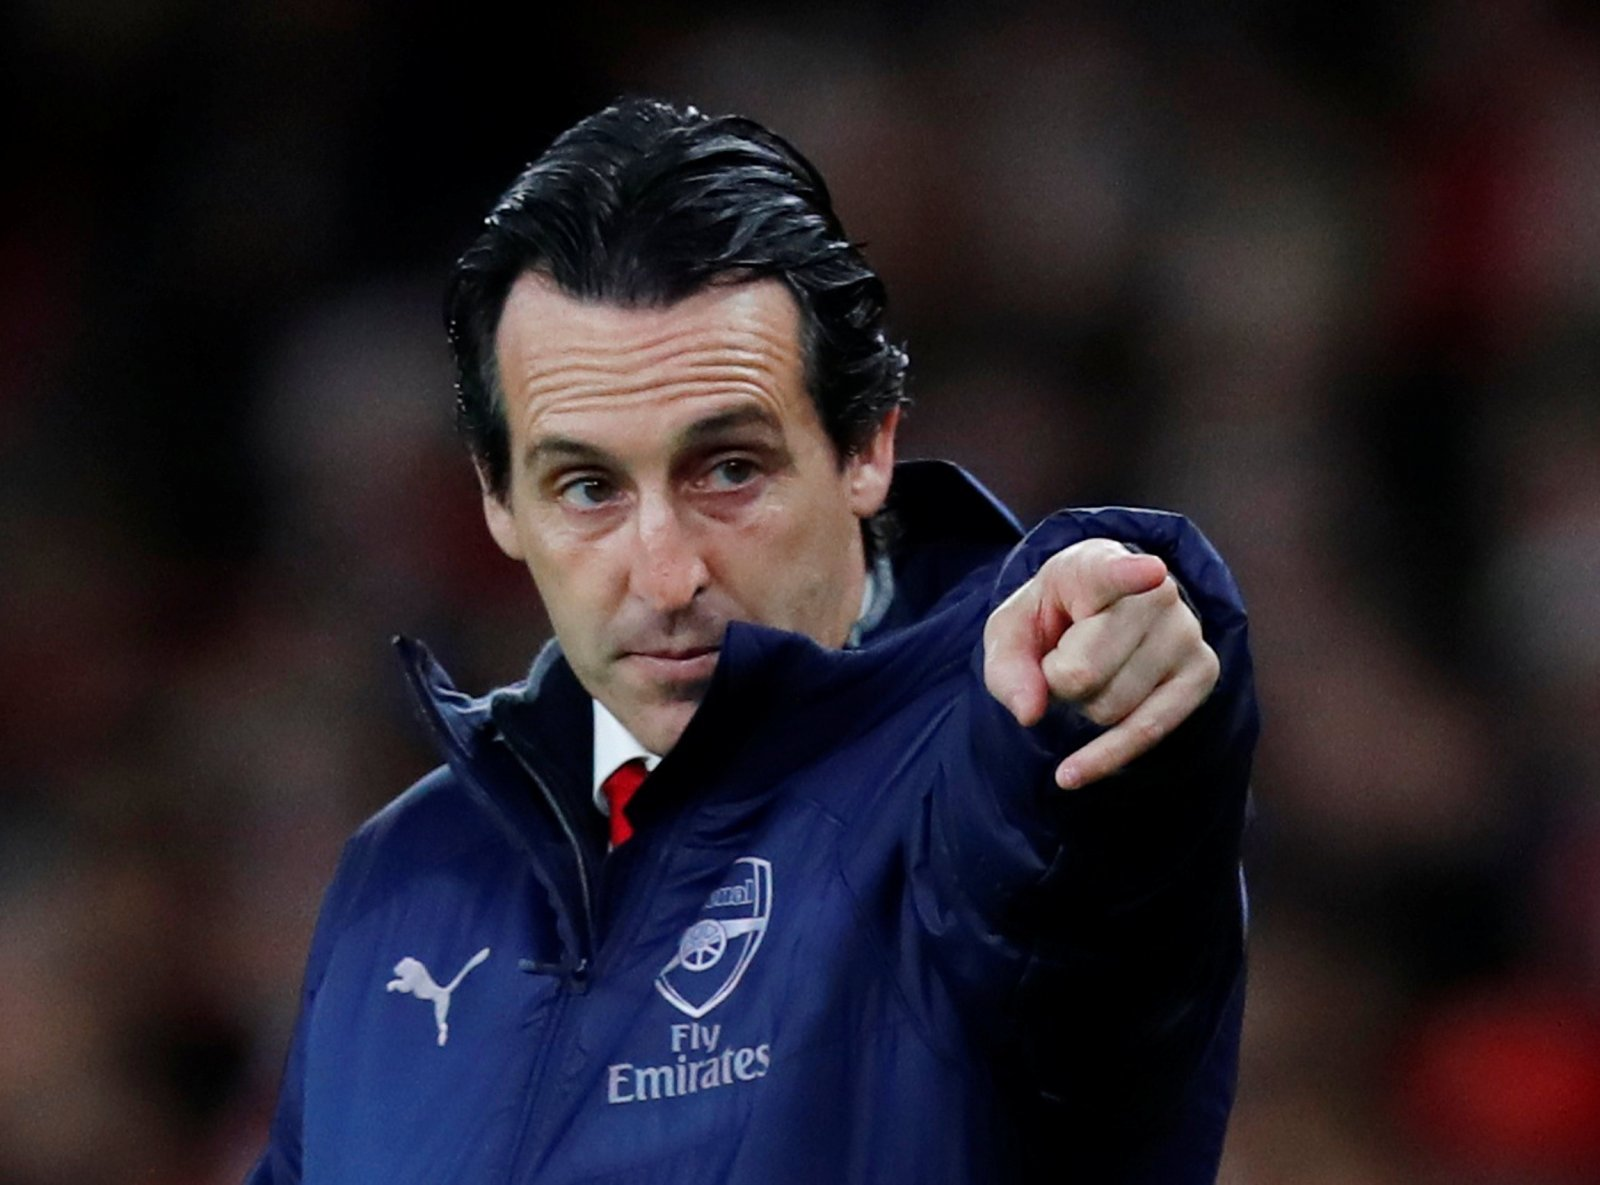 Arsenal: Fans can't believe TalkSPORT caller wants Sam Allardyce or David Moyes to replace Unai Emery